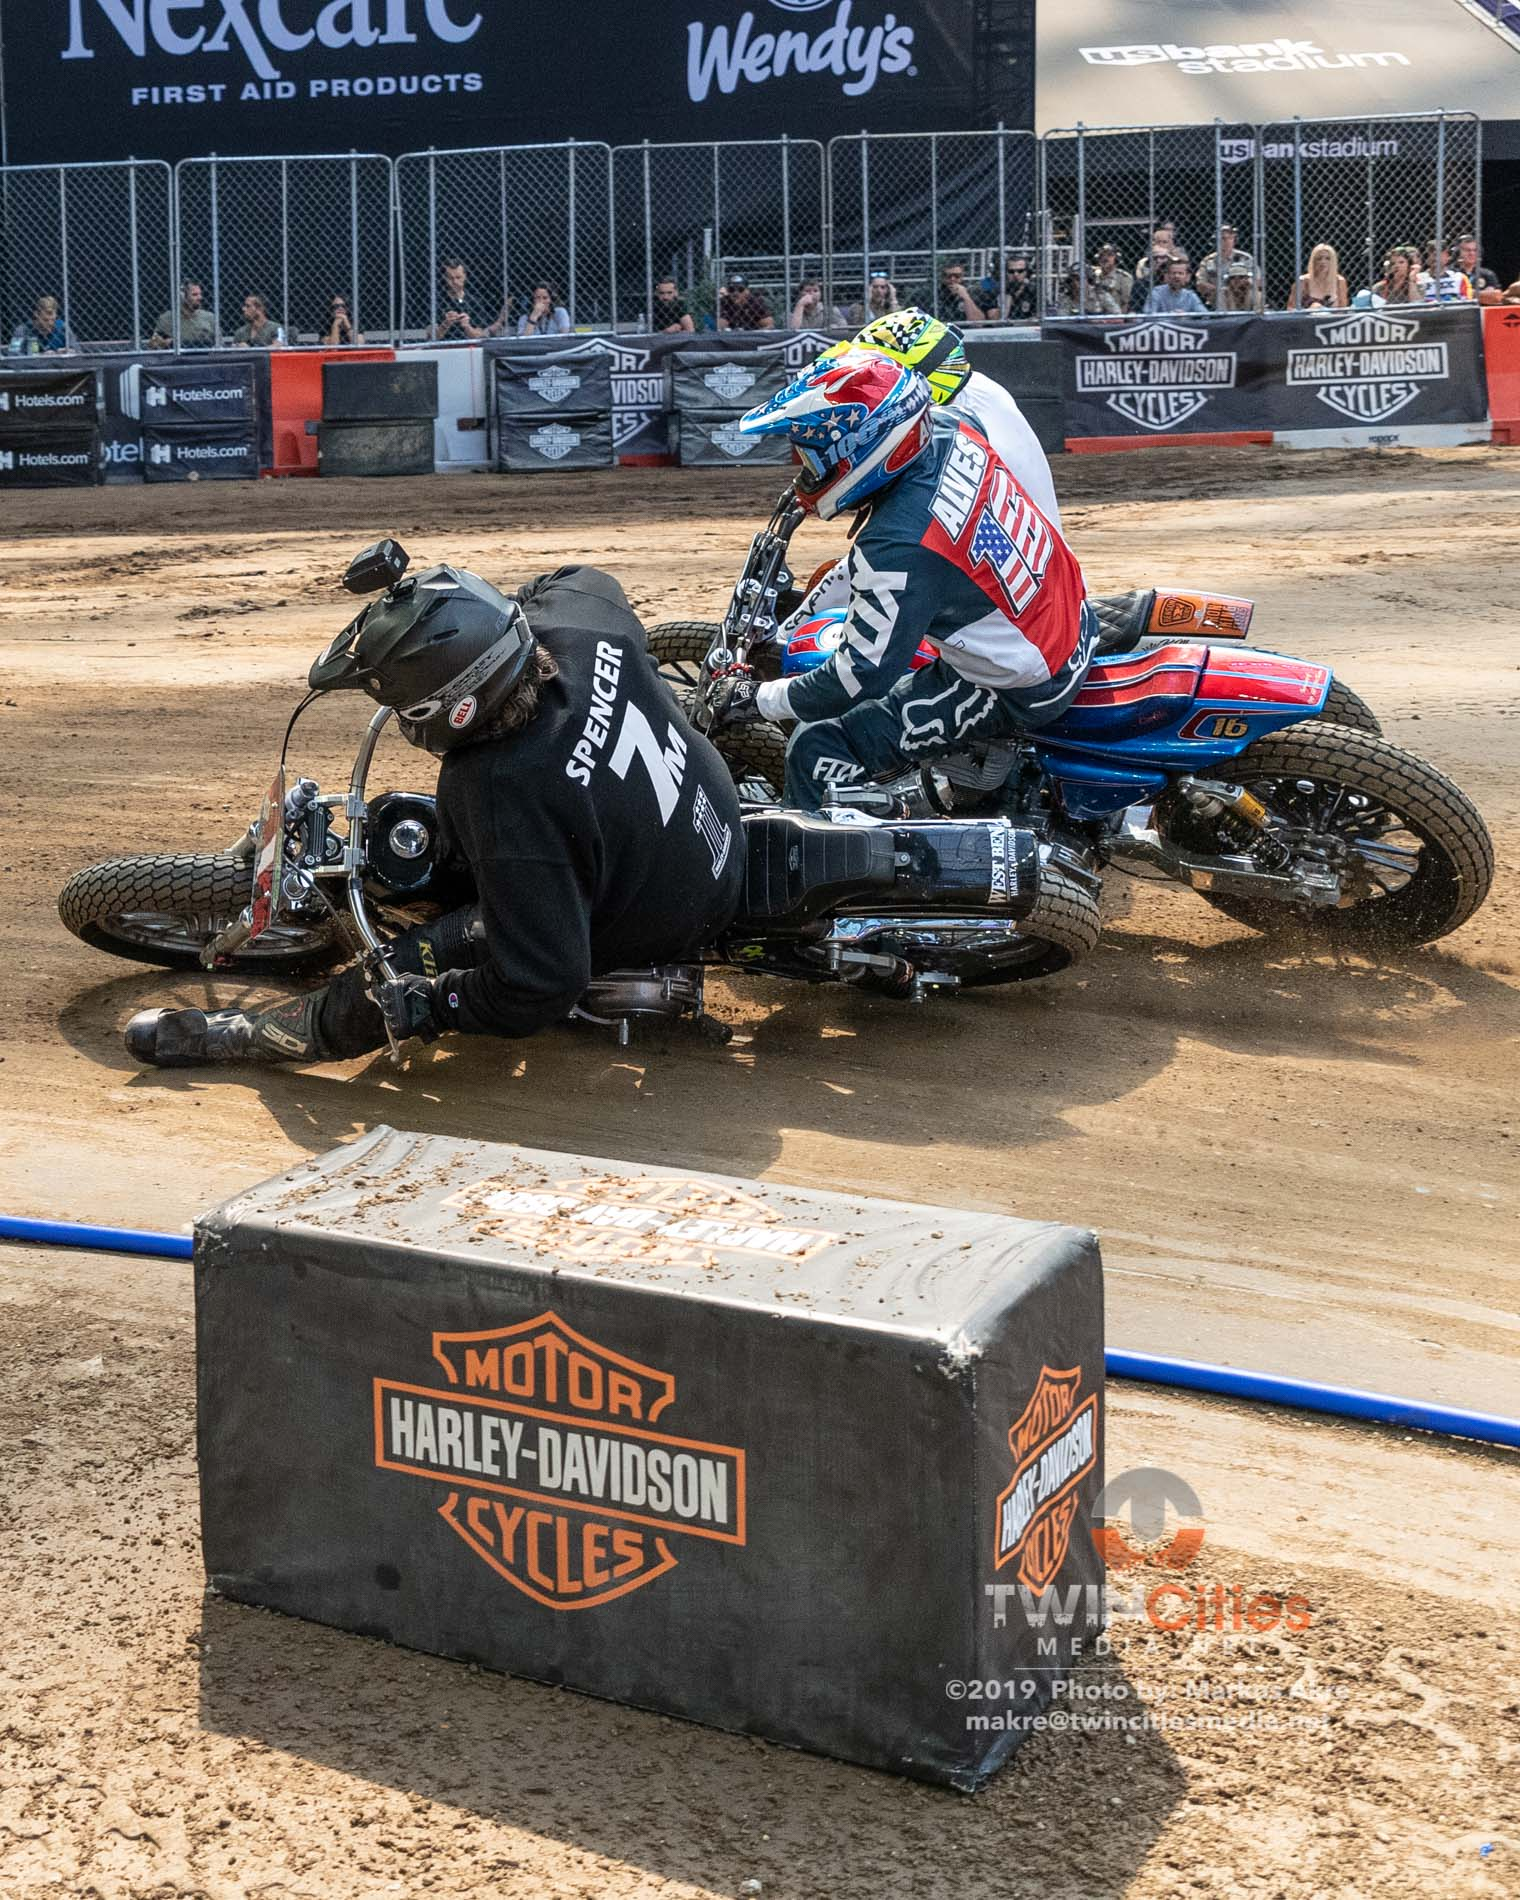 2019-X-Games-Day-4-Harley-Davidson-Hooligan-Racing-11